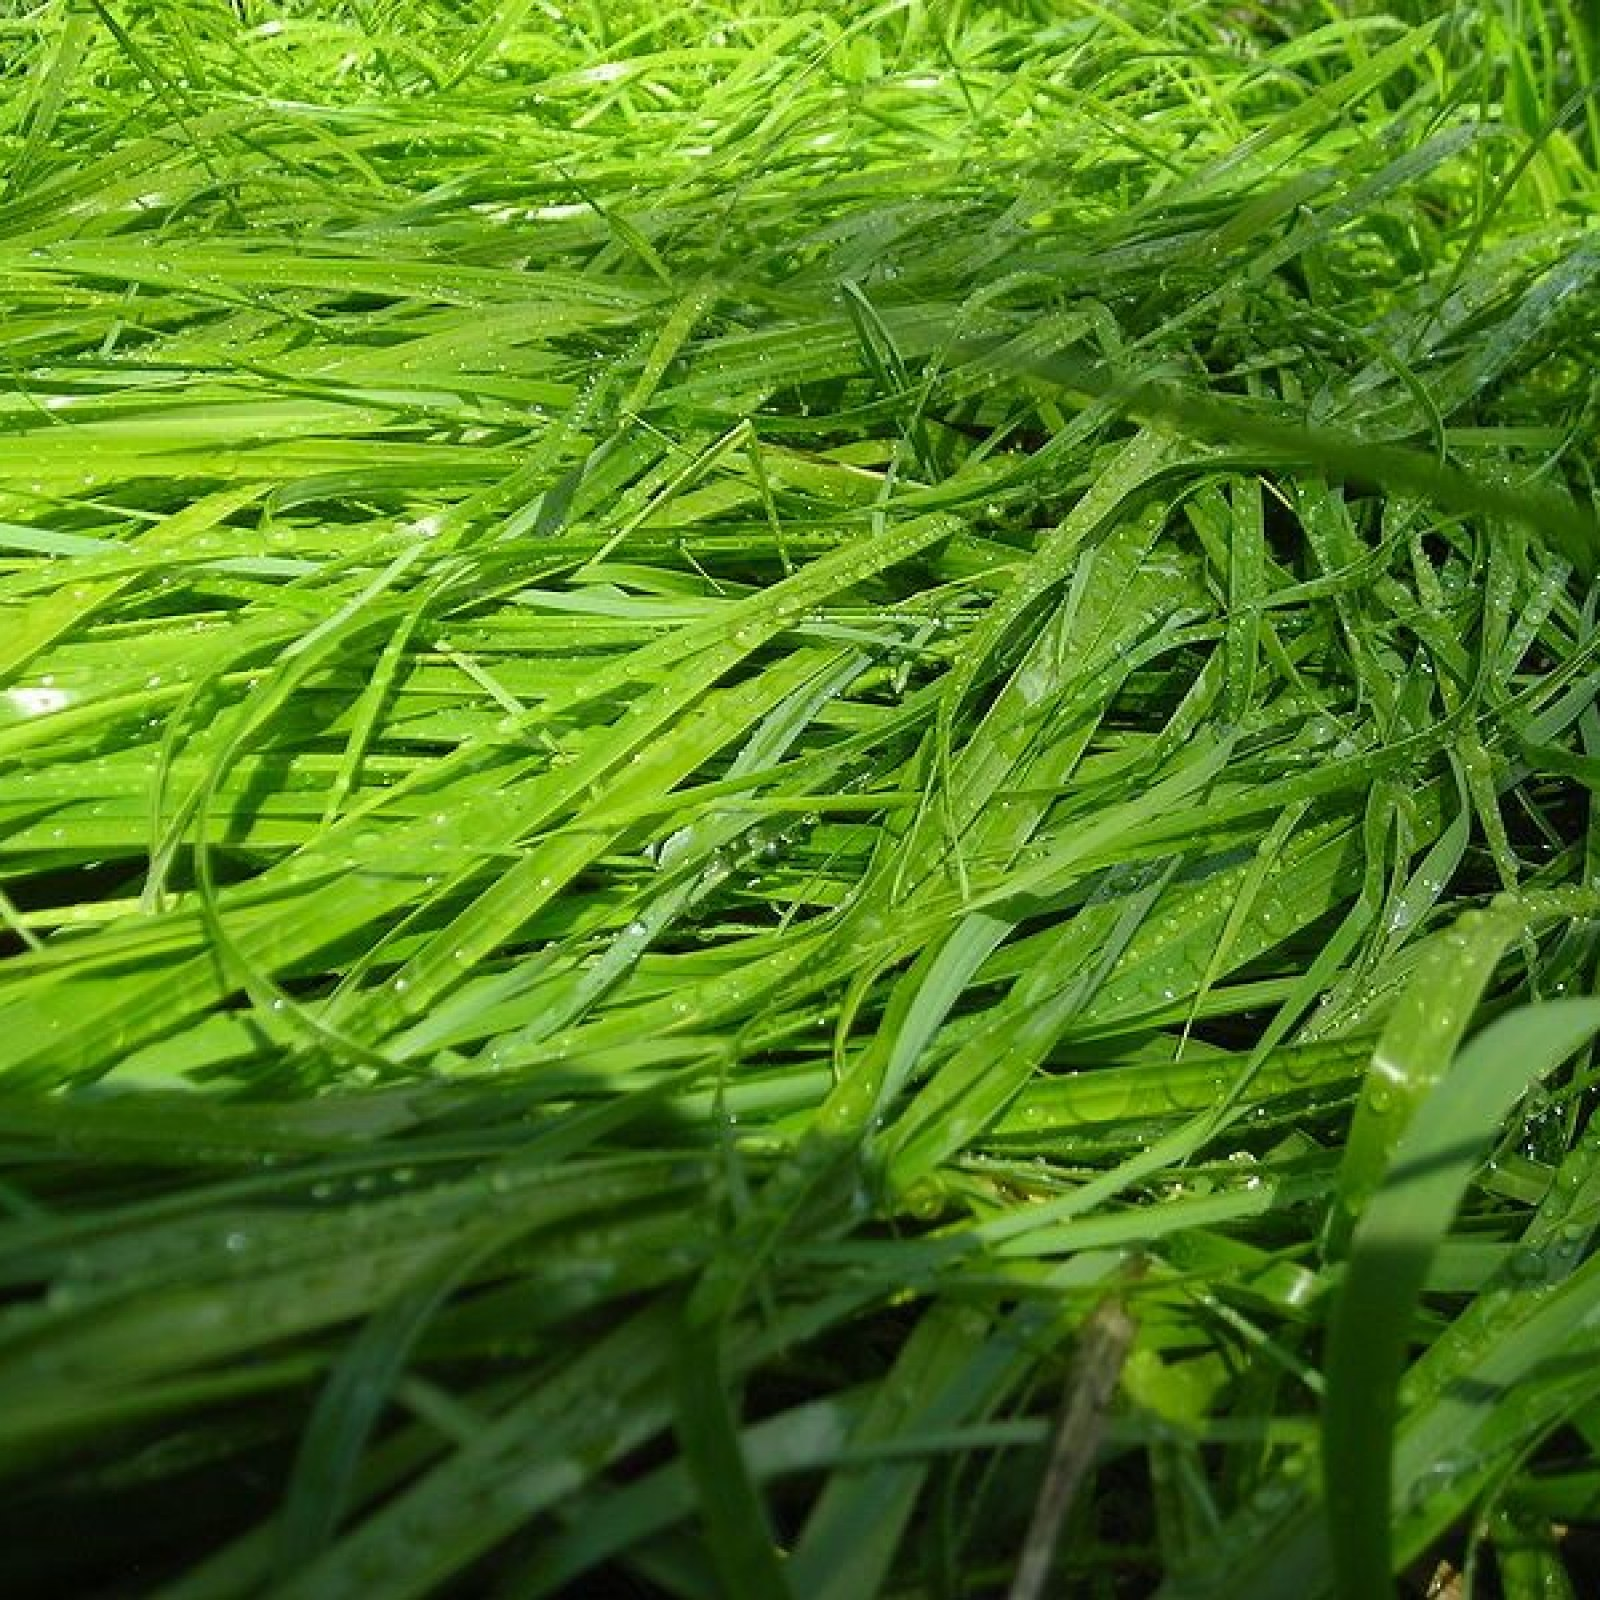 Grass Extract Repels Mosquitoes As Well As Synthetic Deet